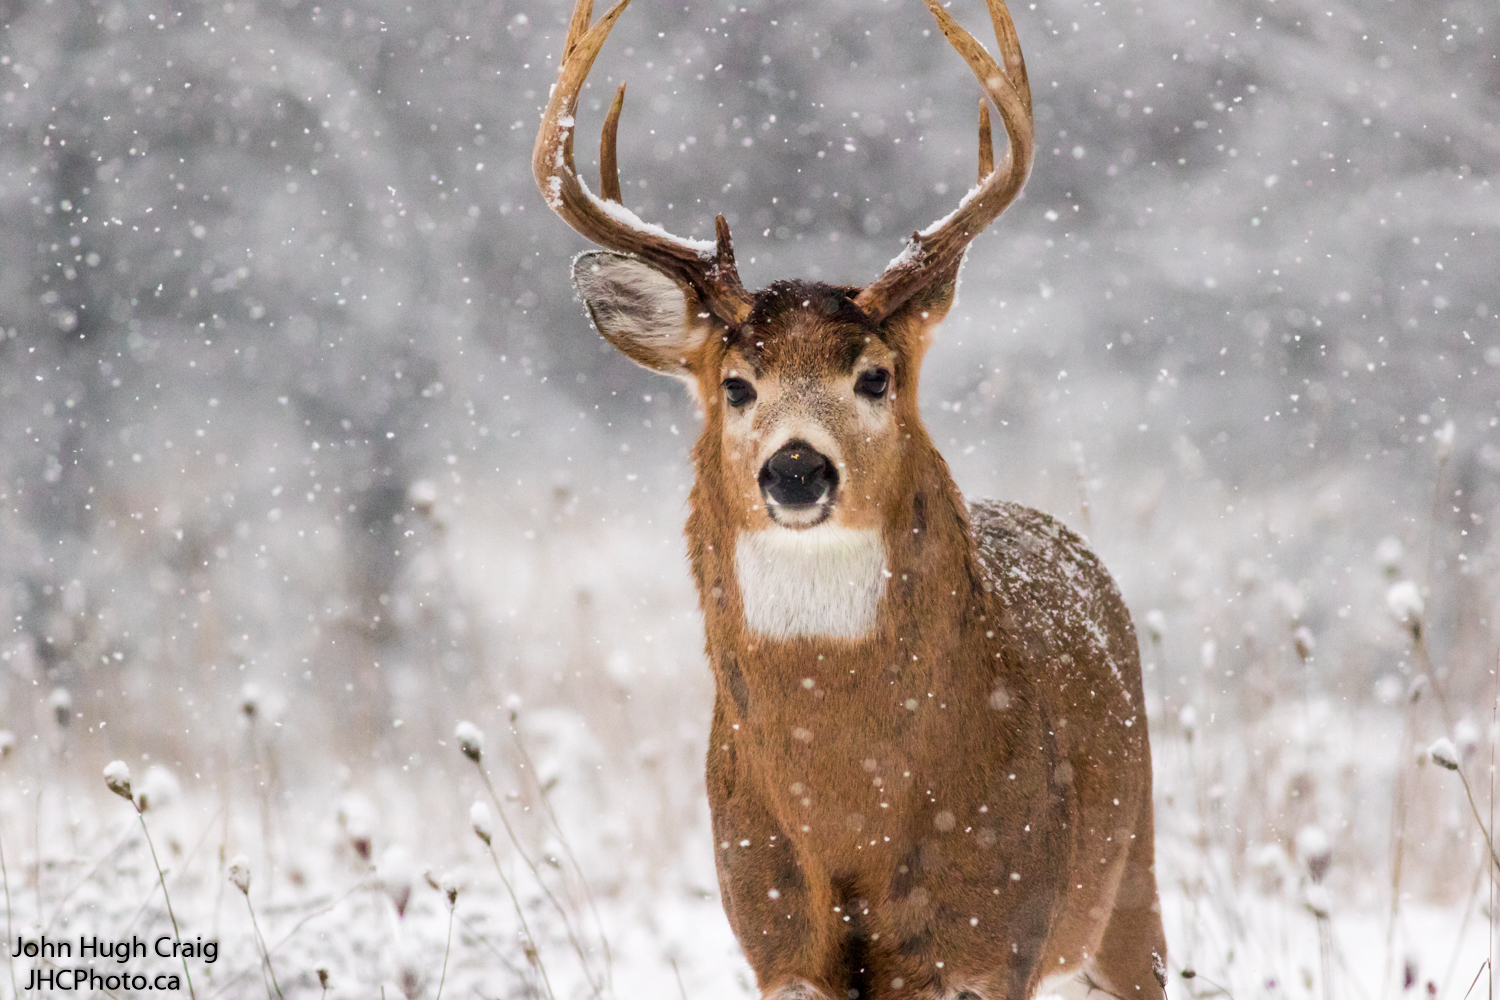 Whitetail Buck Deer in the Snow Storm